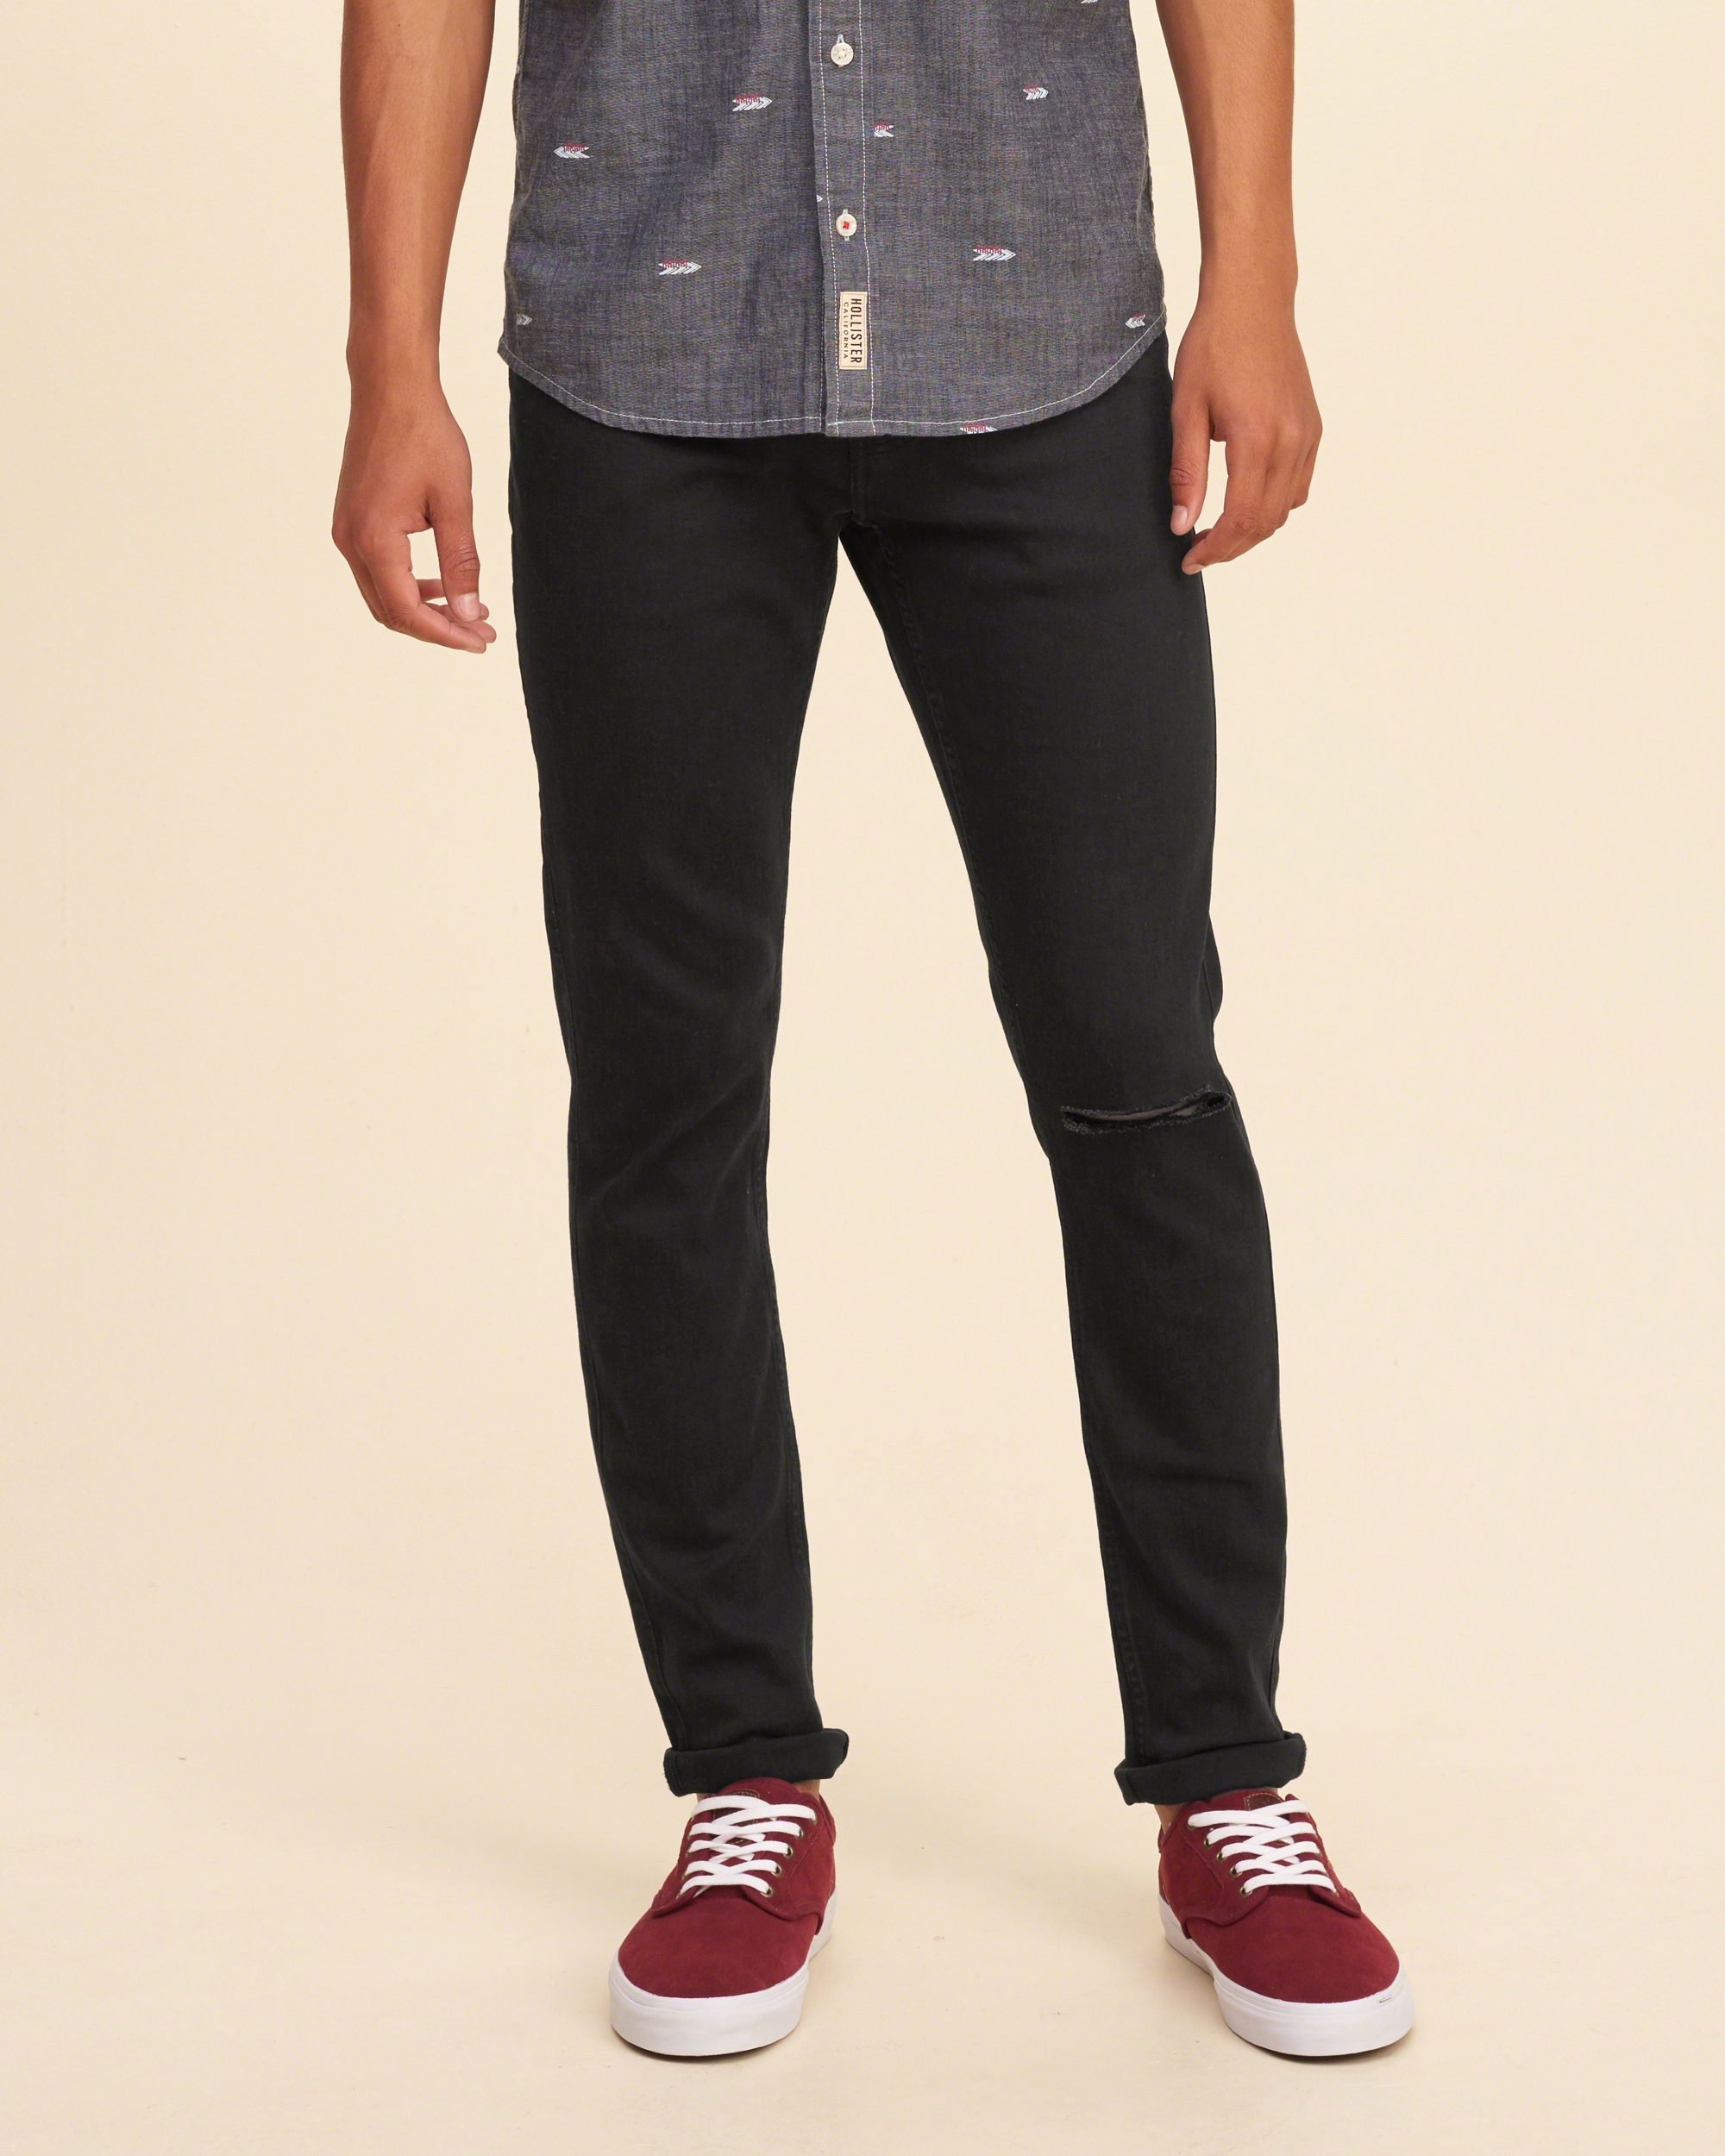 hollister dark jeans for men - photo #20